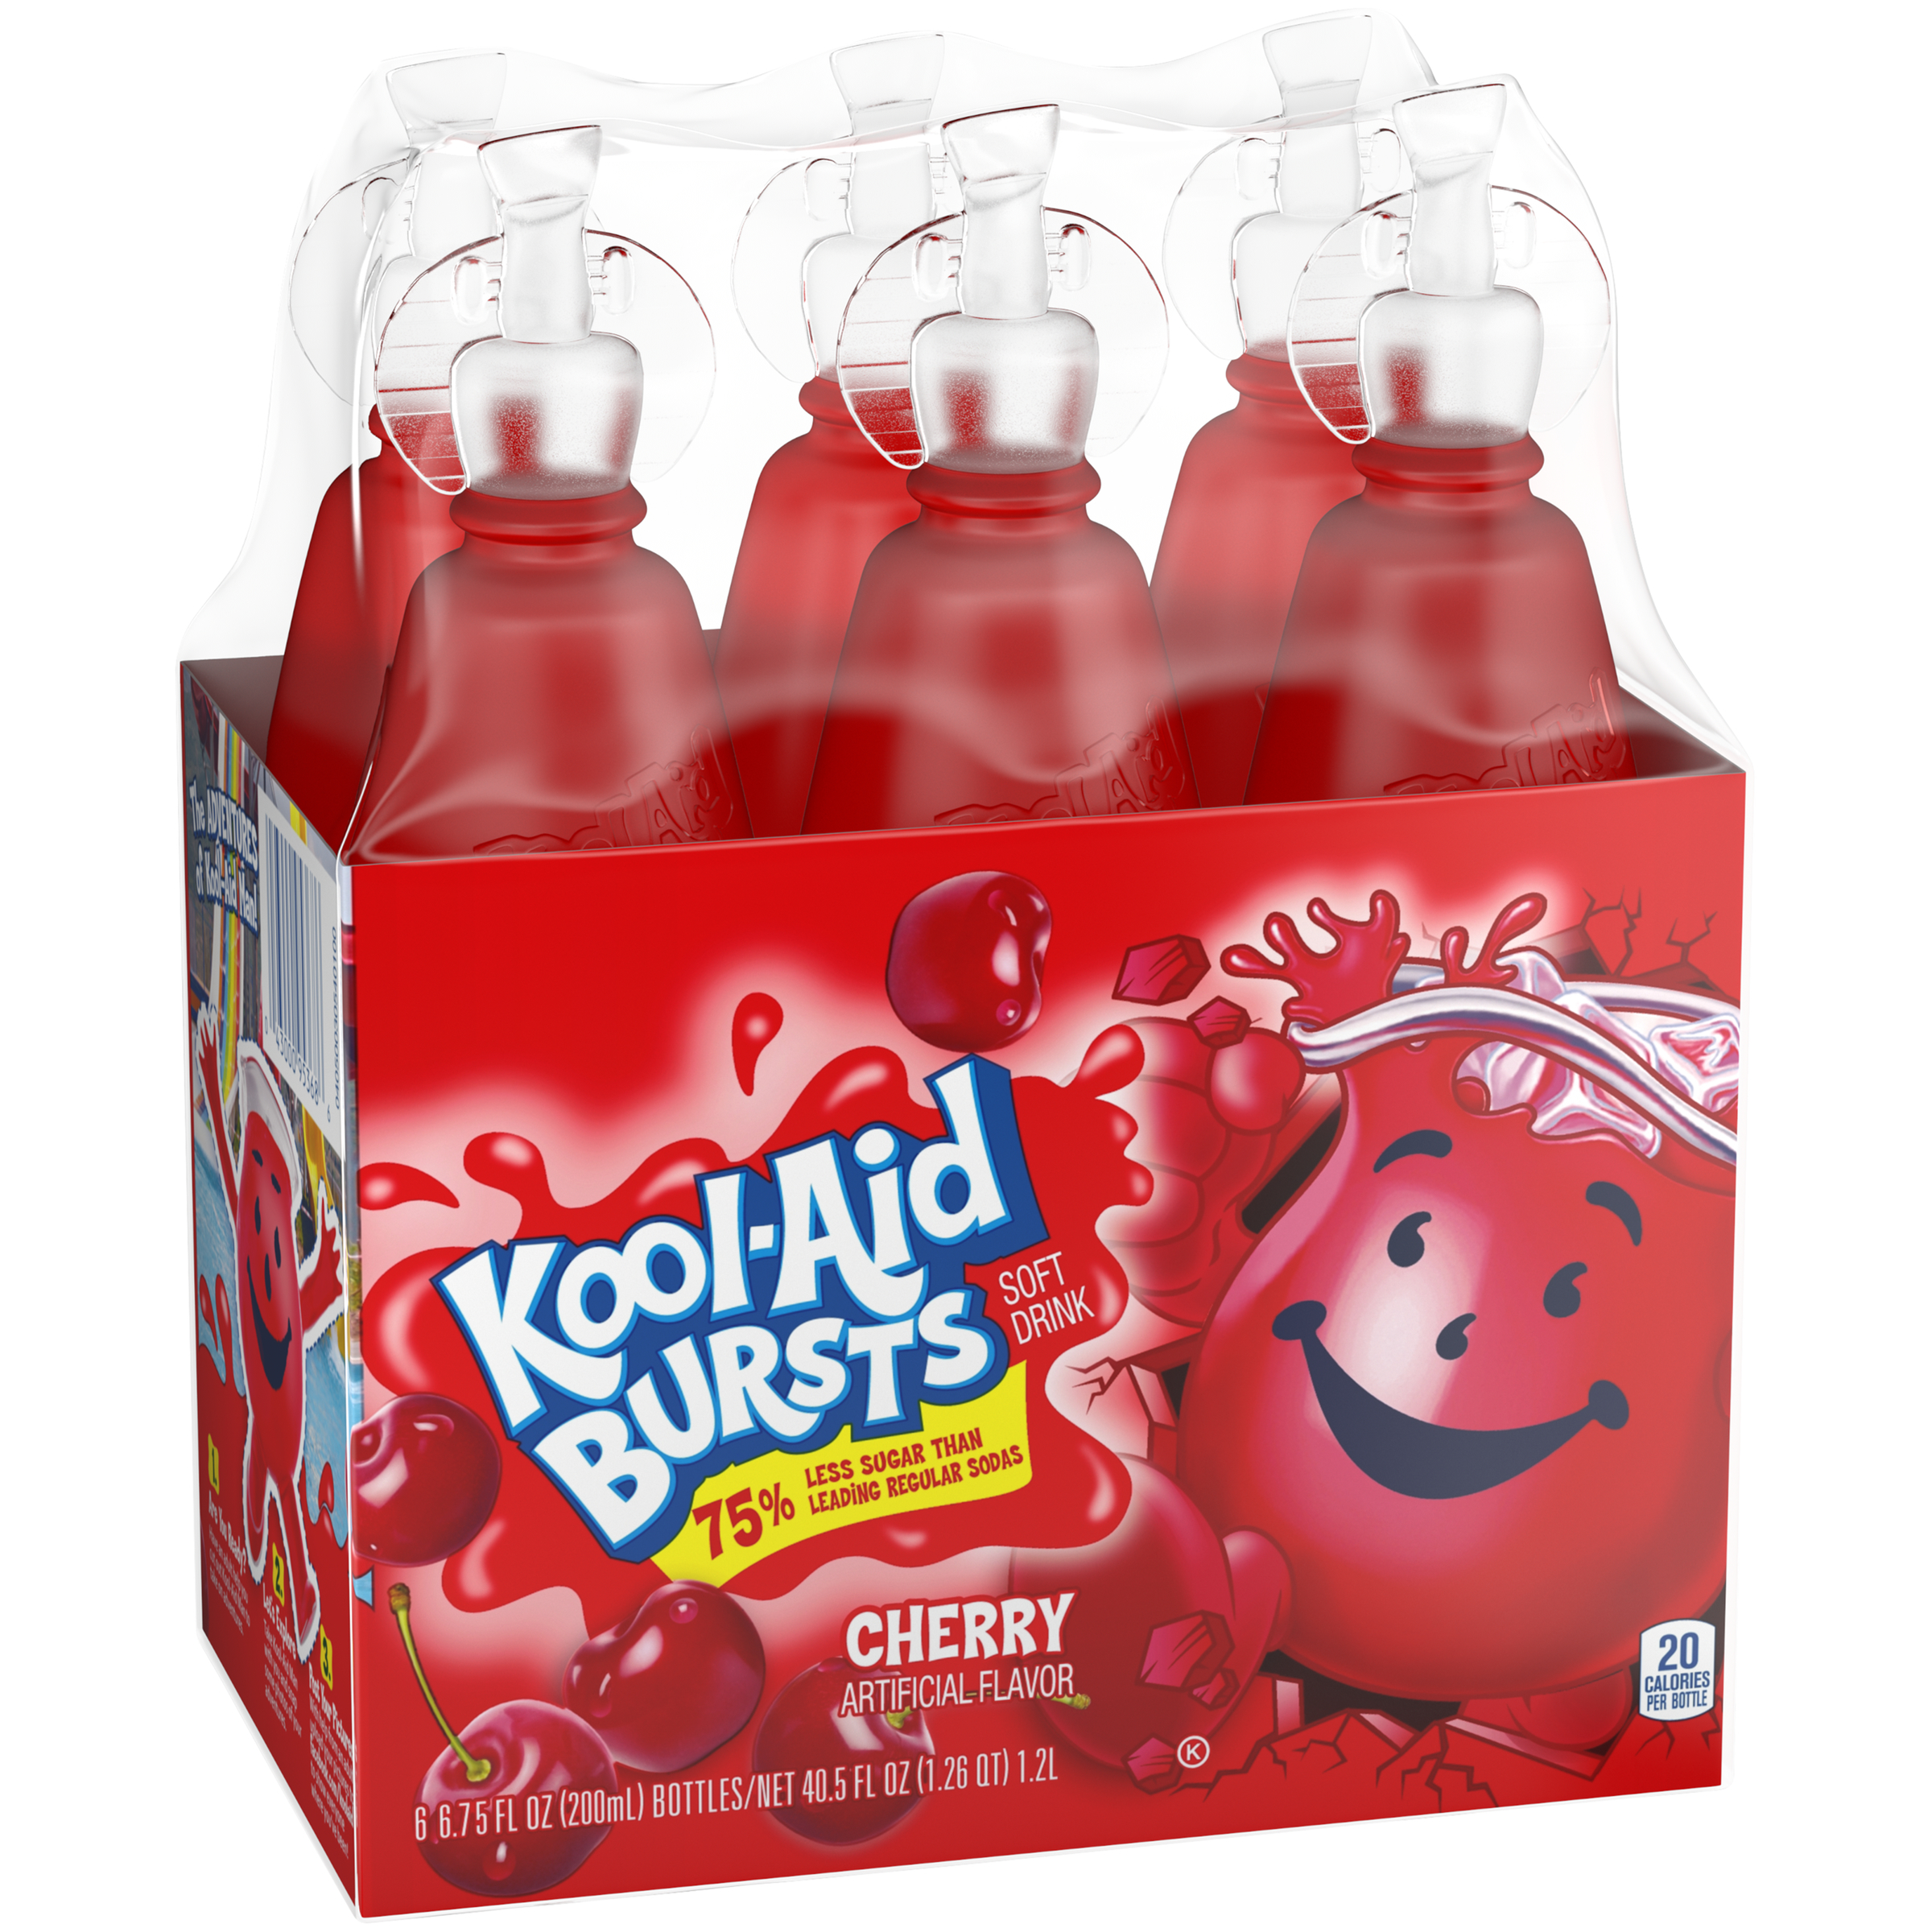 (2 Pack) Kool-Aid Bursts Cherry Ready-to-Drink Juice, 6 - 6.75 fl oz Packs